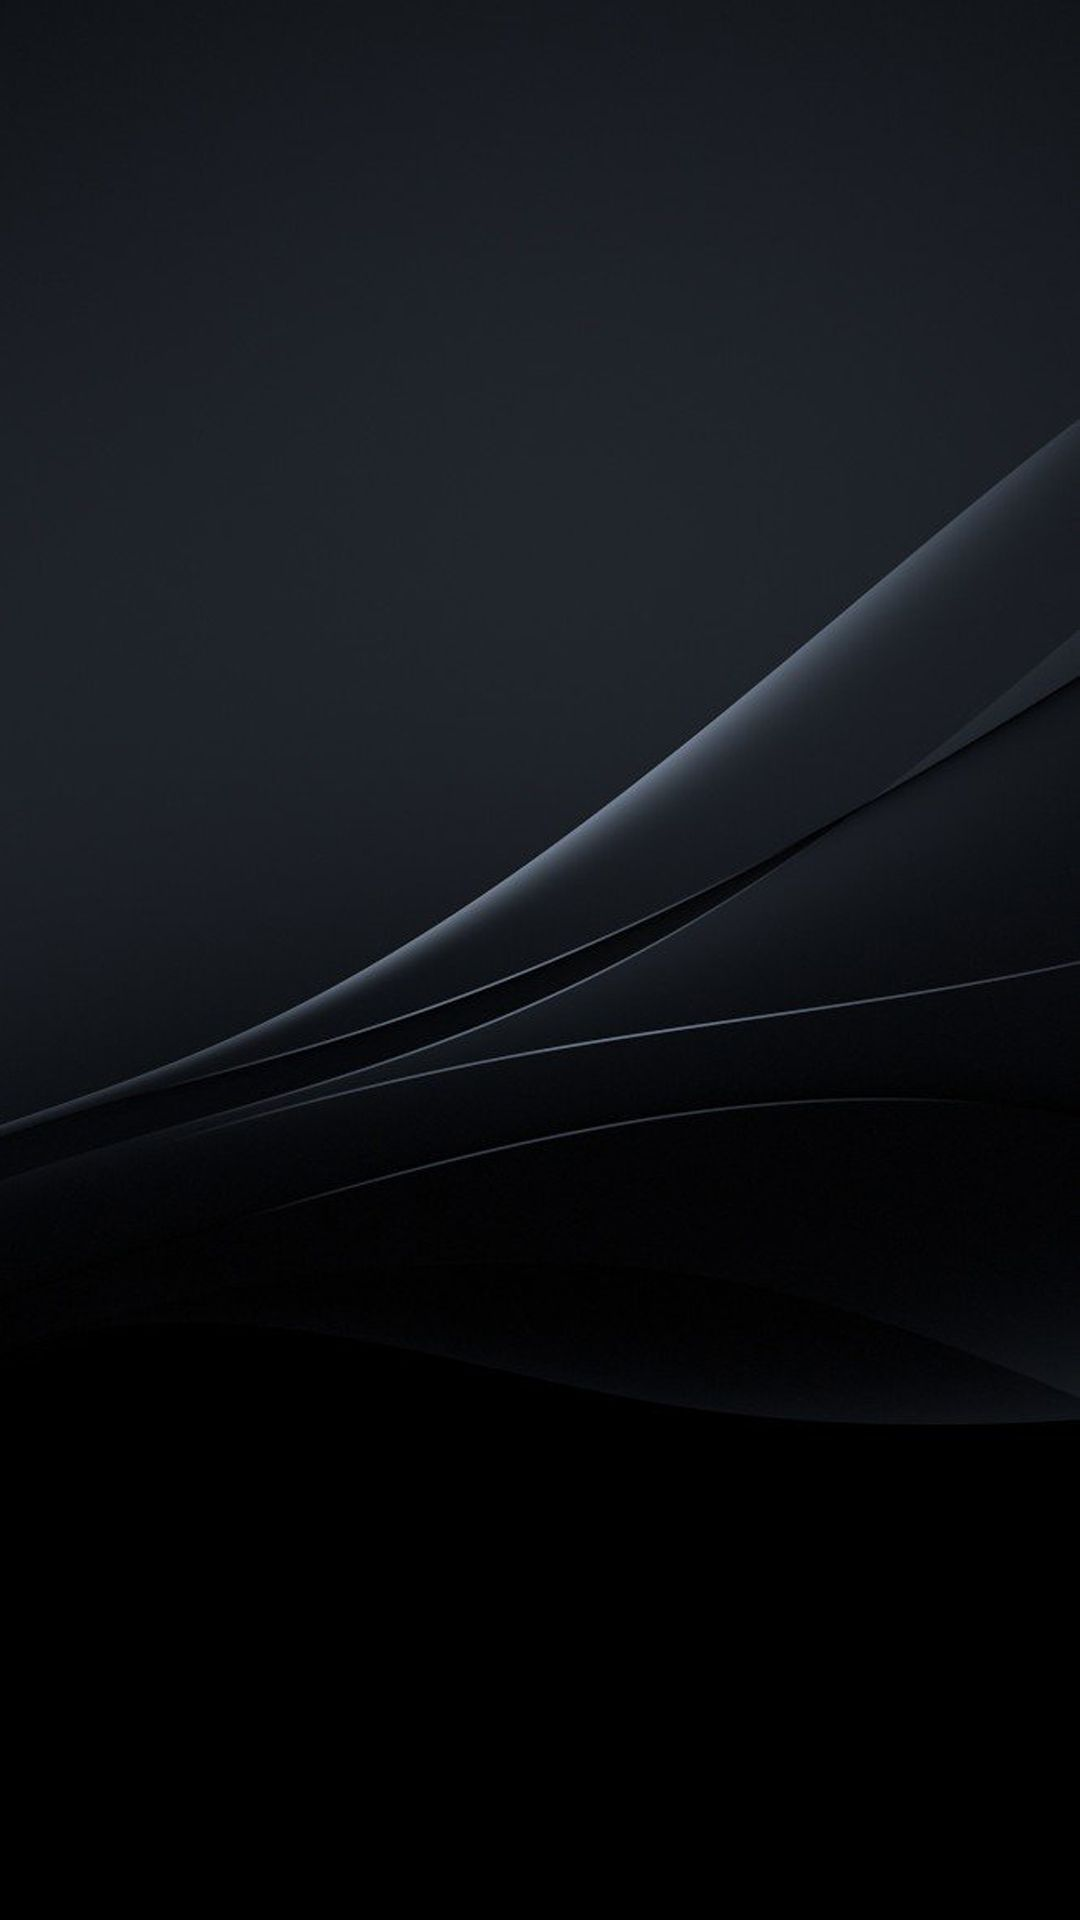 Samsung Black Wallpapers Wallpaper Cave